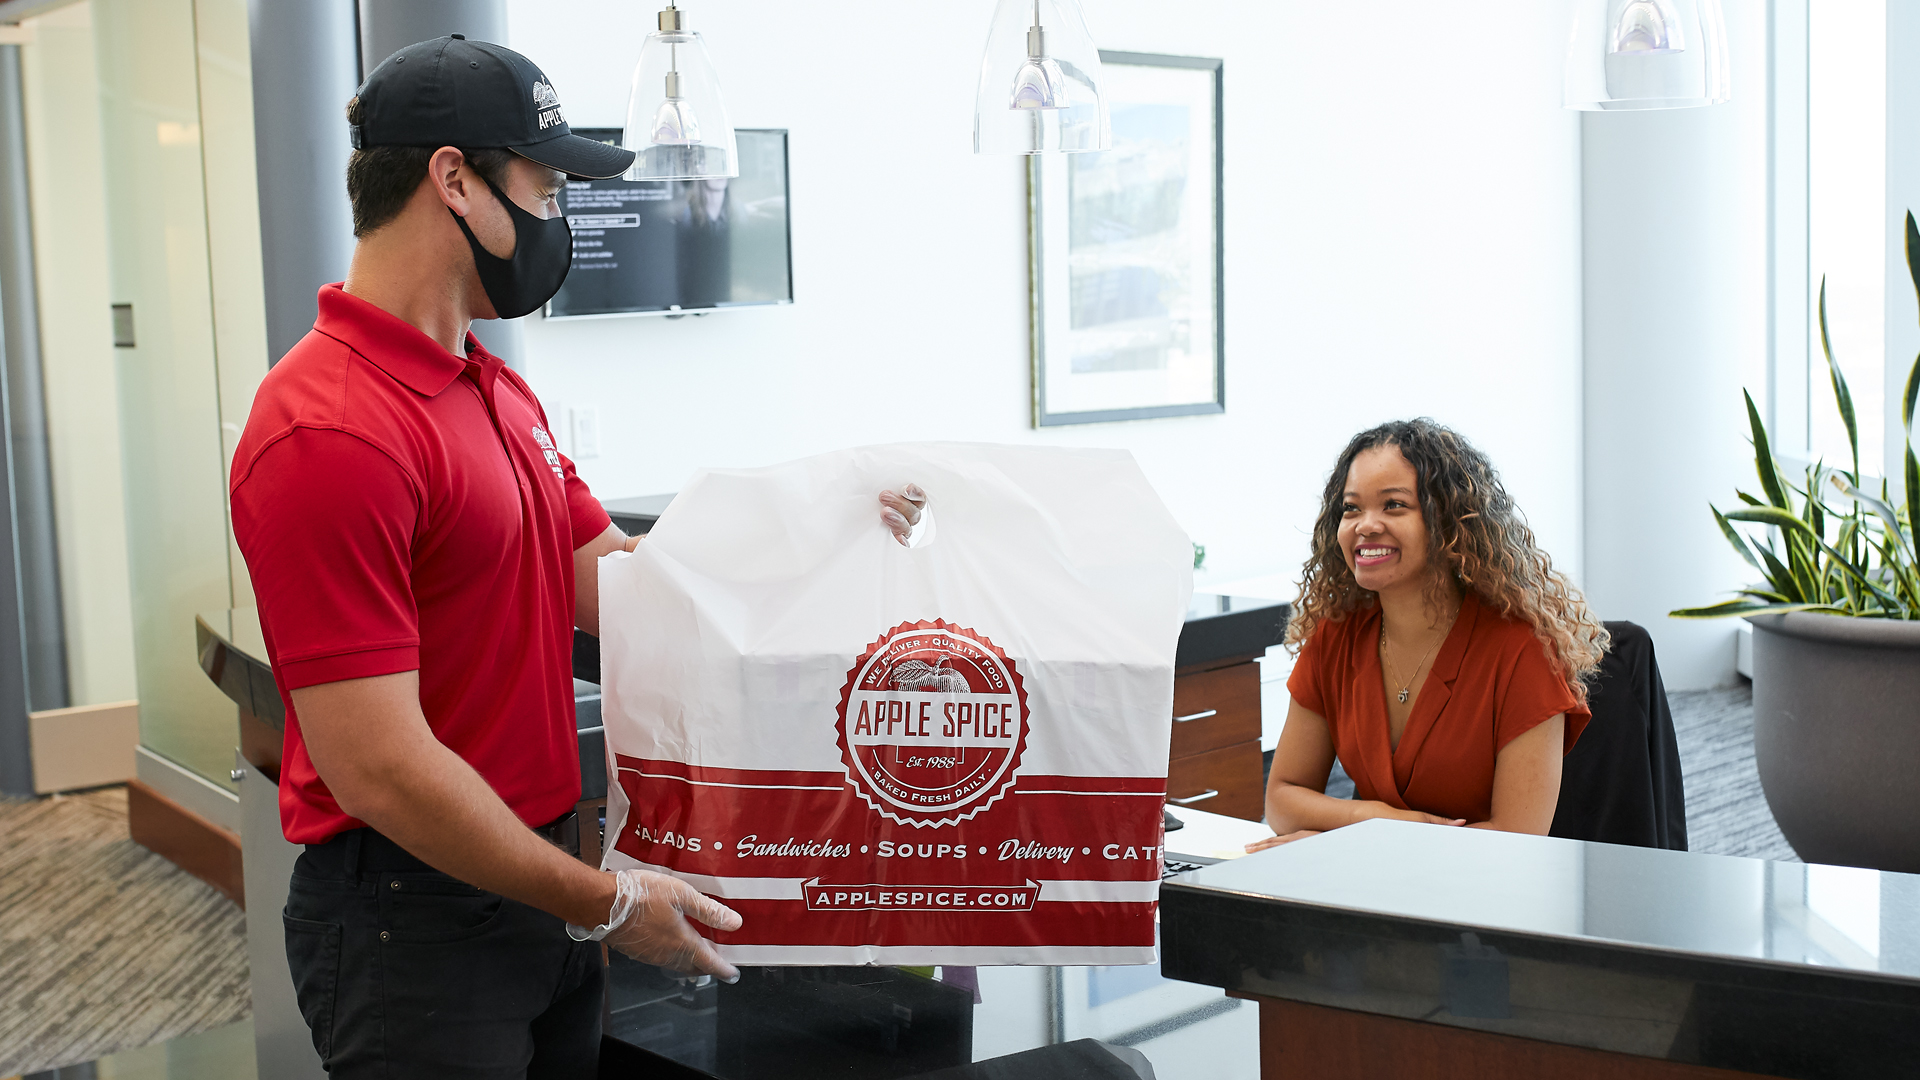 Apple Spice Catering Employee Delivers to Office for Catered Event